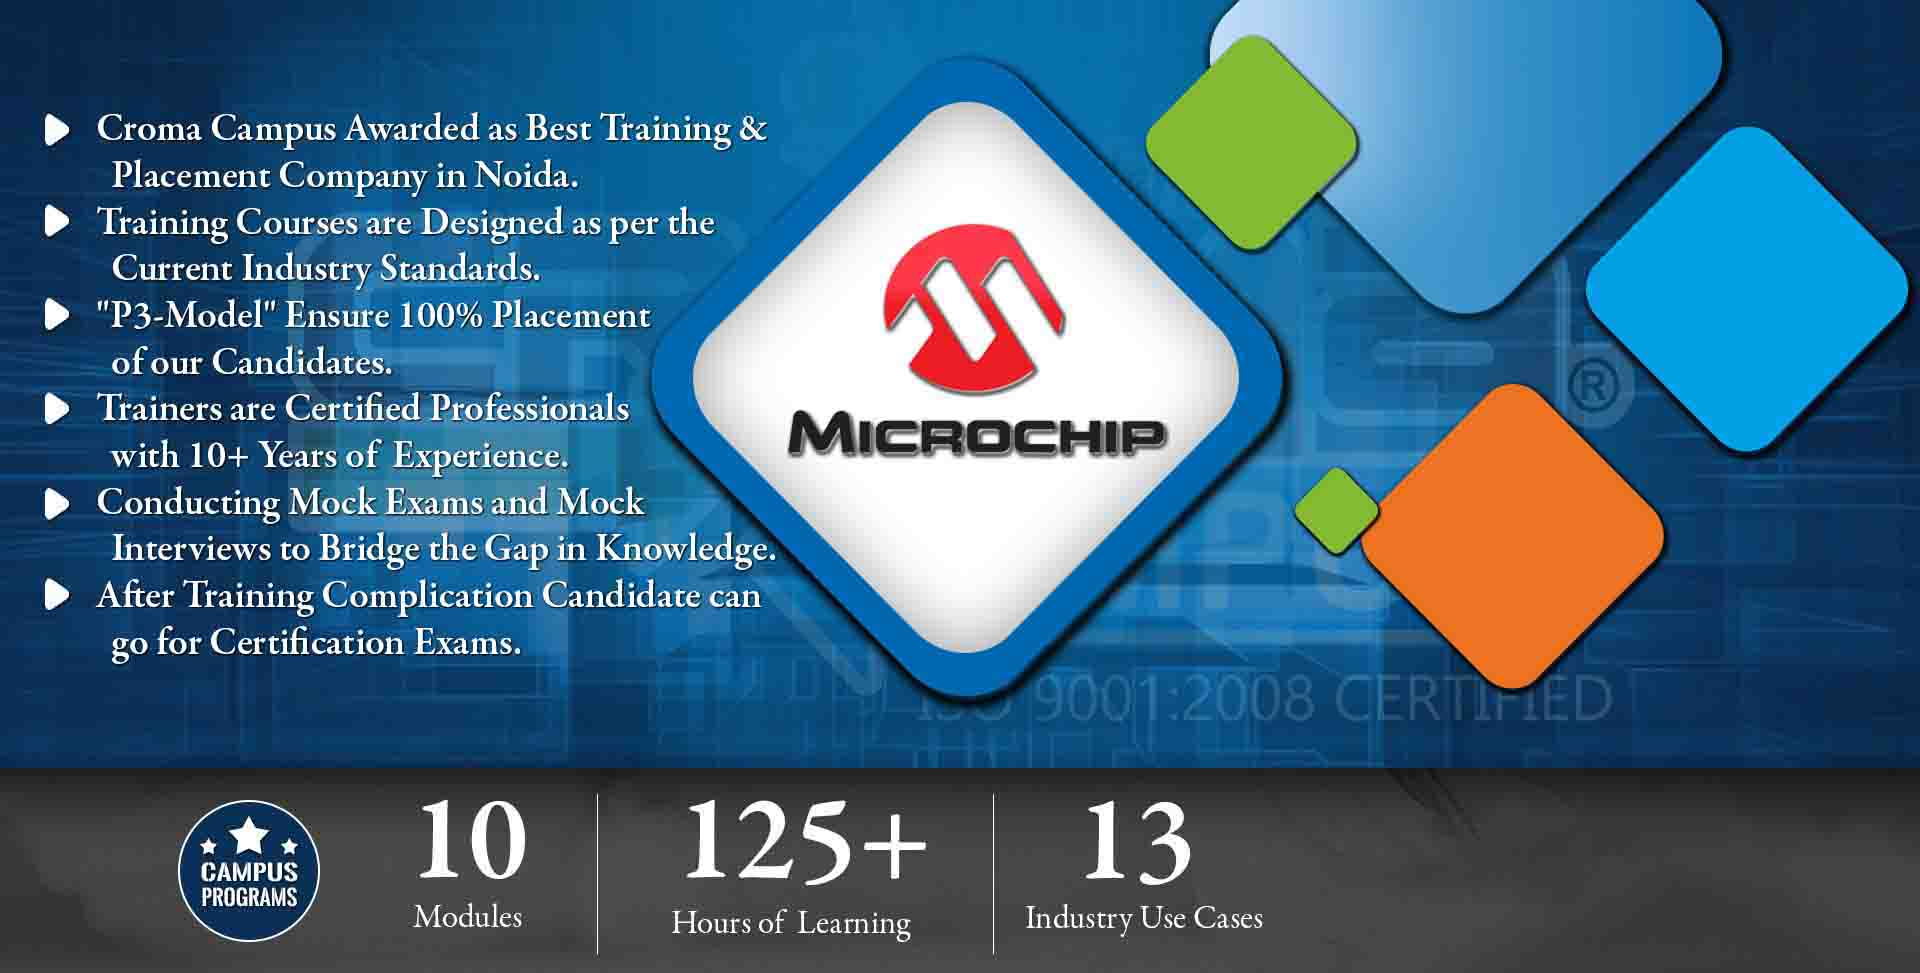 PIC Microcontroller Training in Noida- Croma Campus